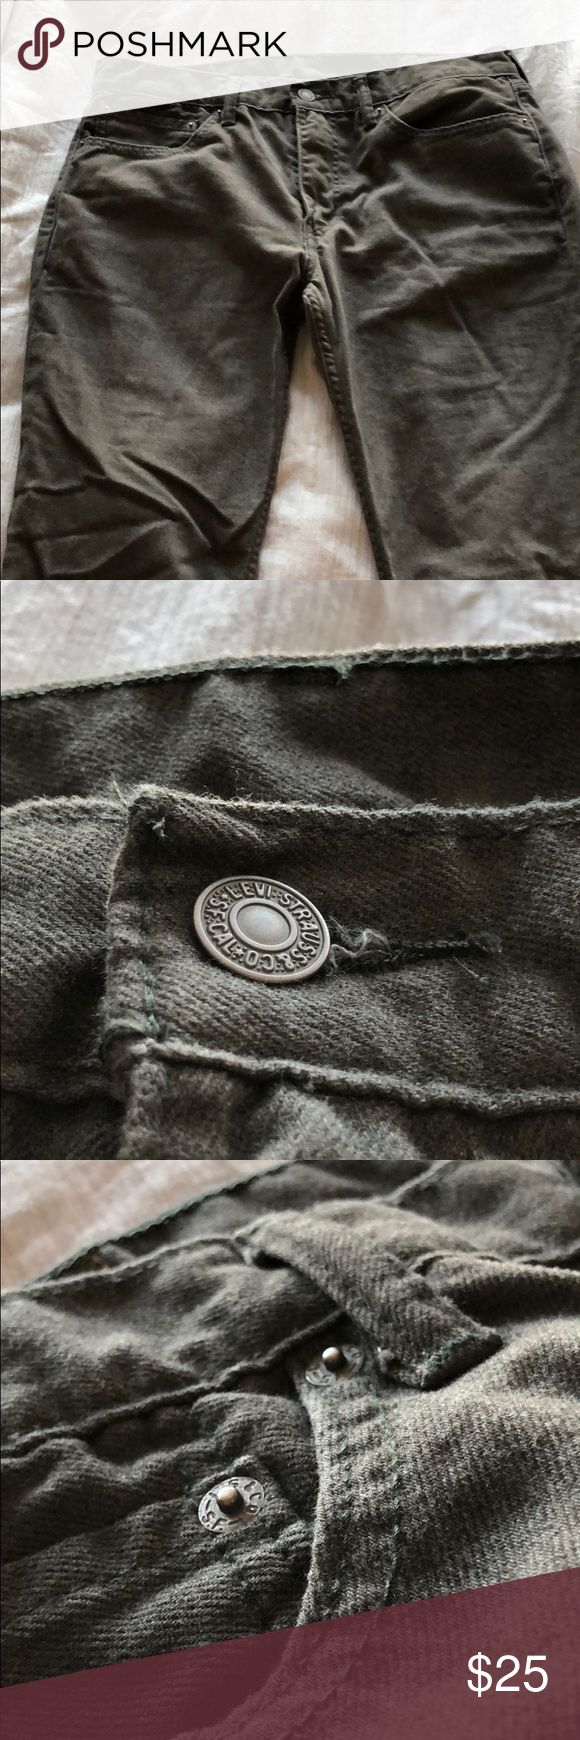 Levi's Strauss & Co 511 Pants Size 34W 32L Used For sale is a pair of used Levi's Strauss & Co 511 pants size 34W 32L. Grey in color. Levis Strauss & Co Jeans Slim Straight